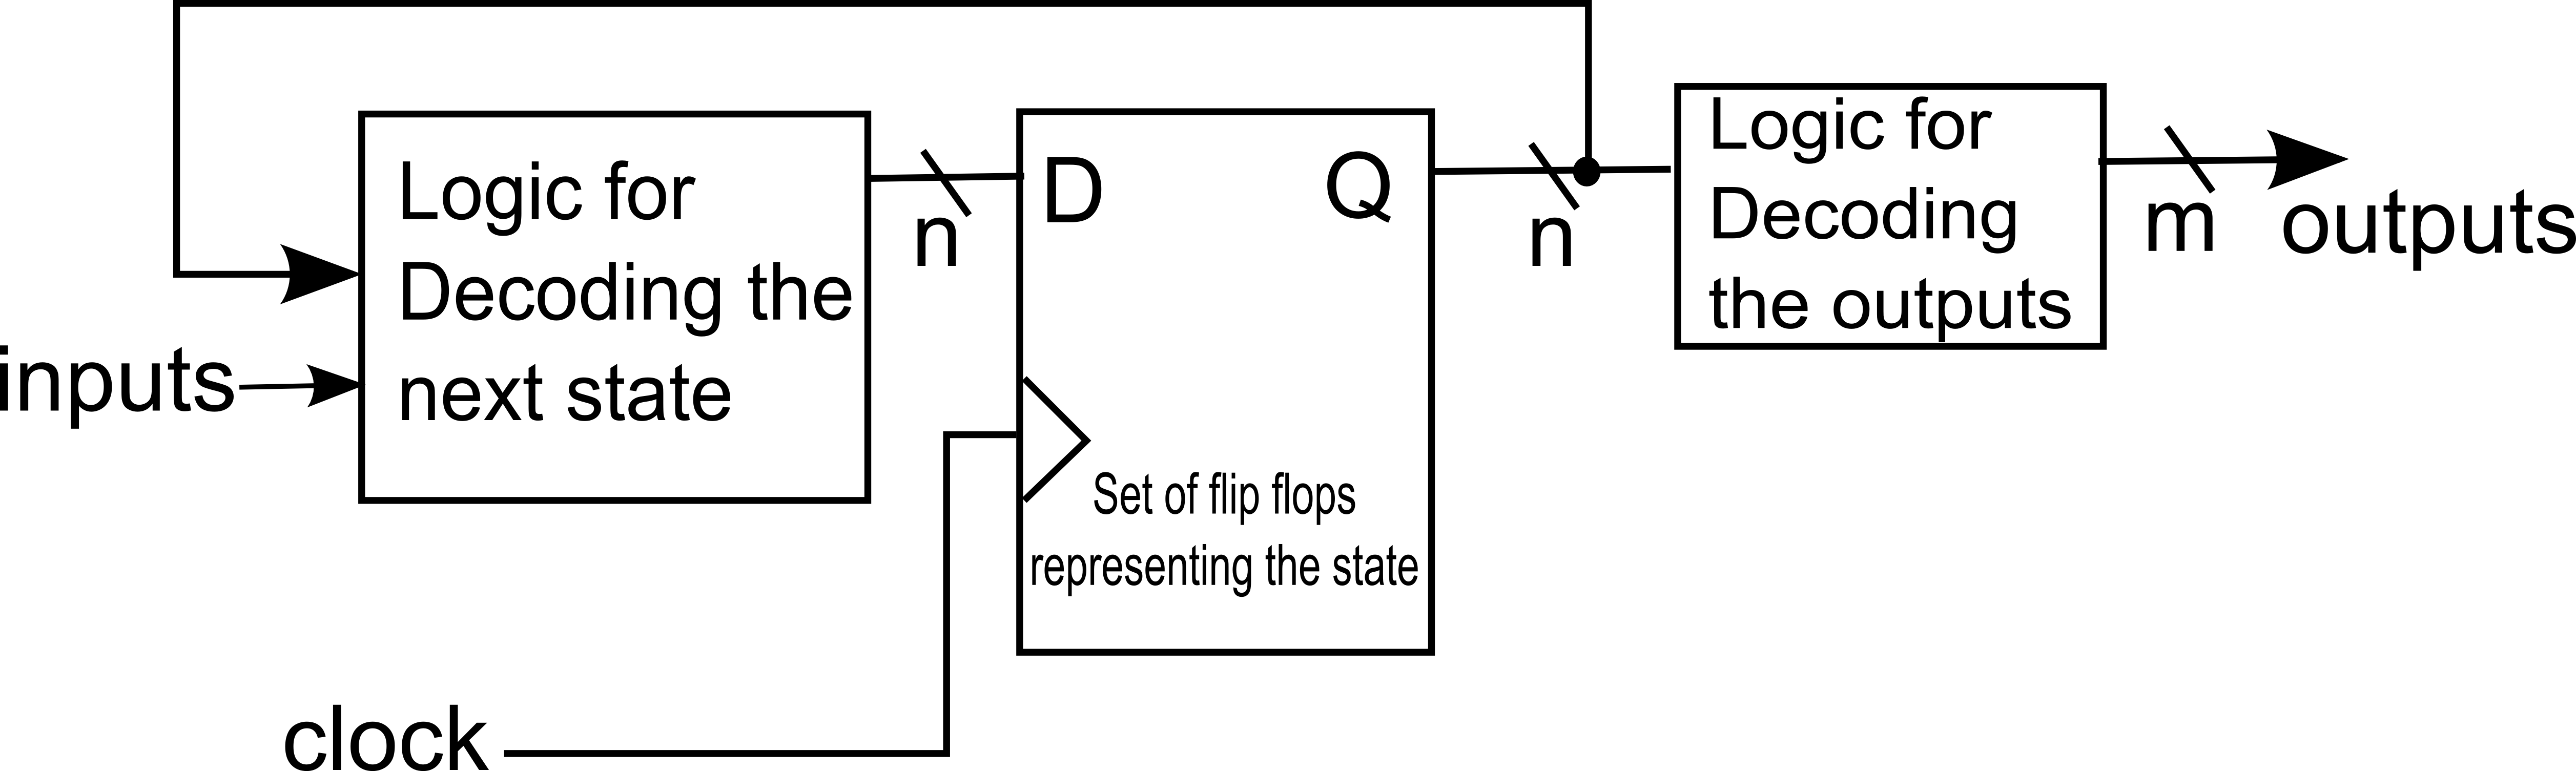 Block diagram representation of logic created for a state machine